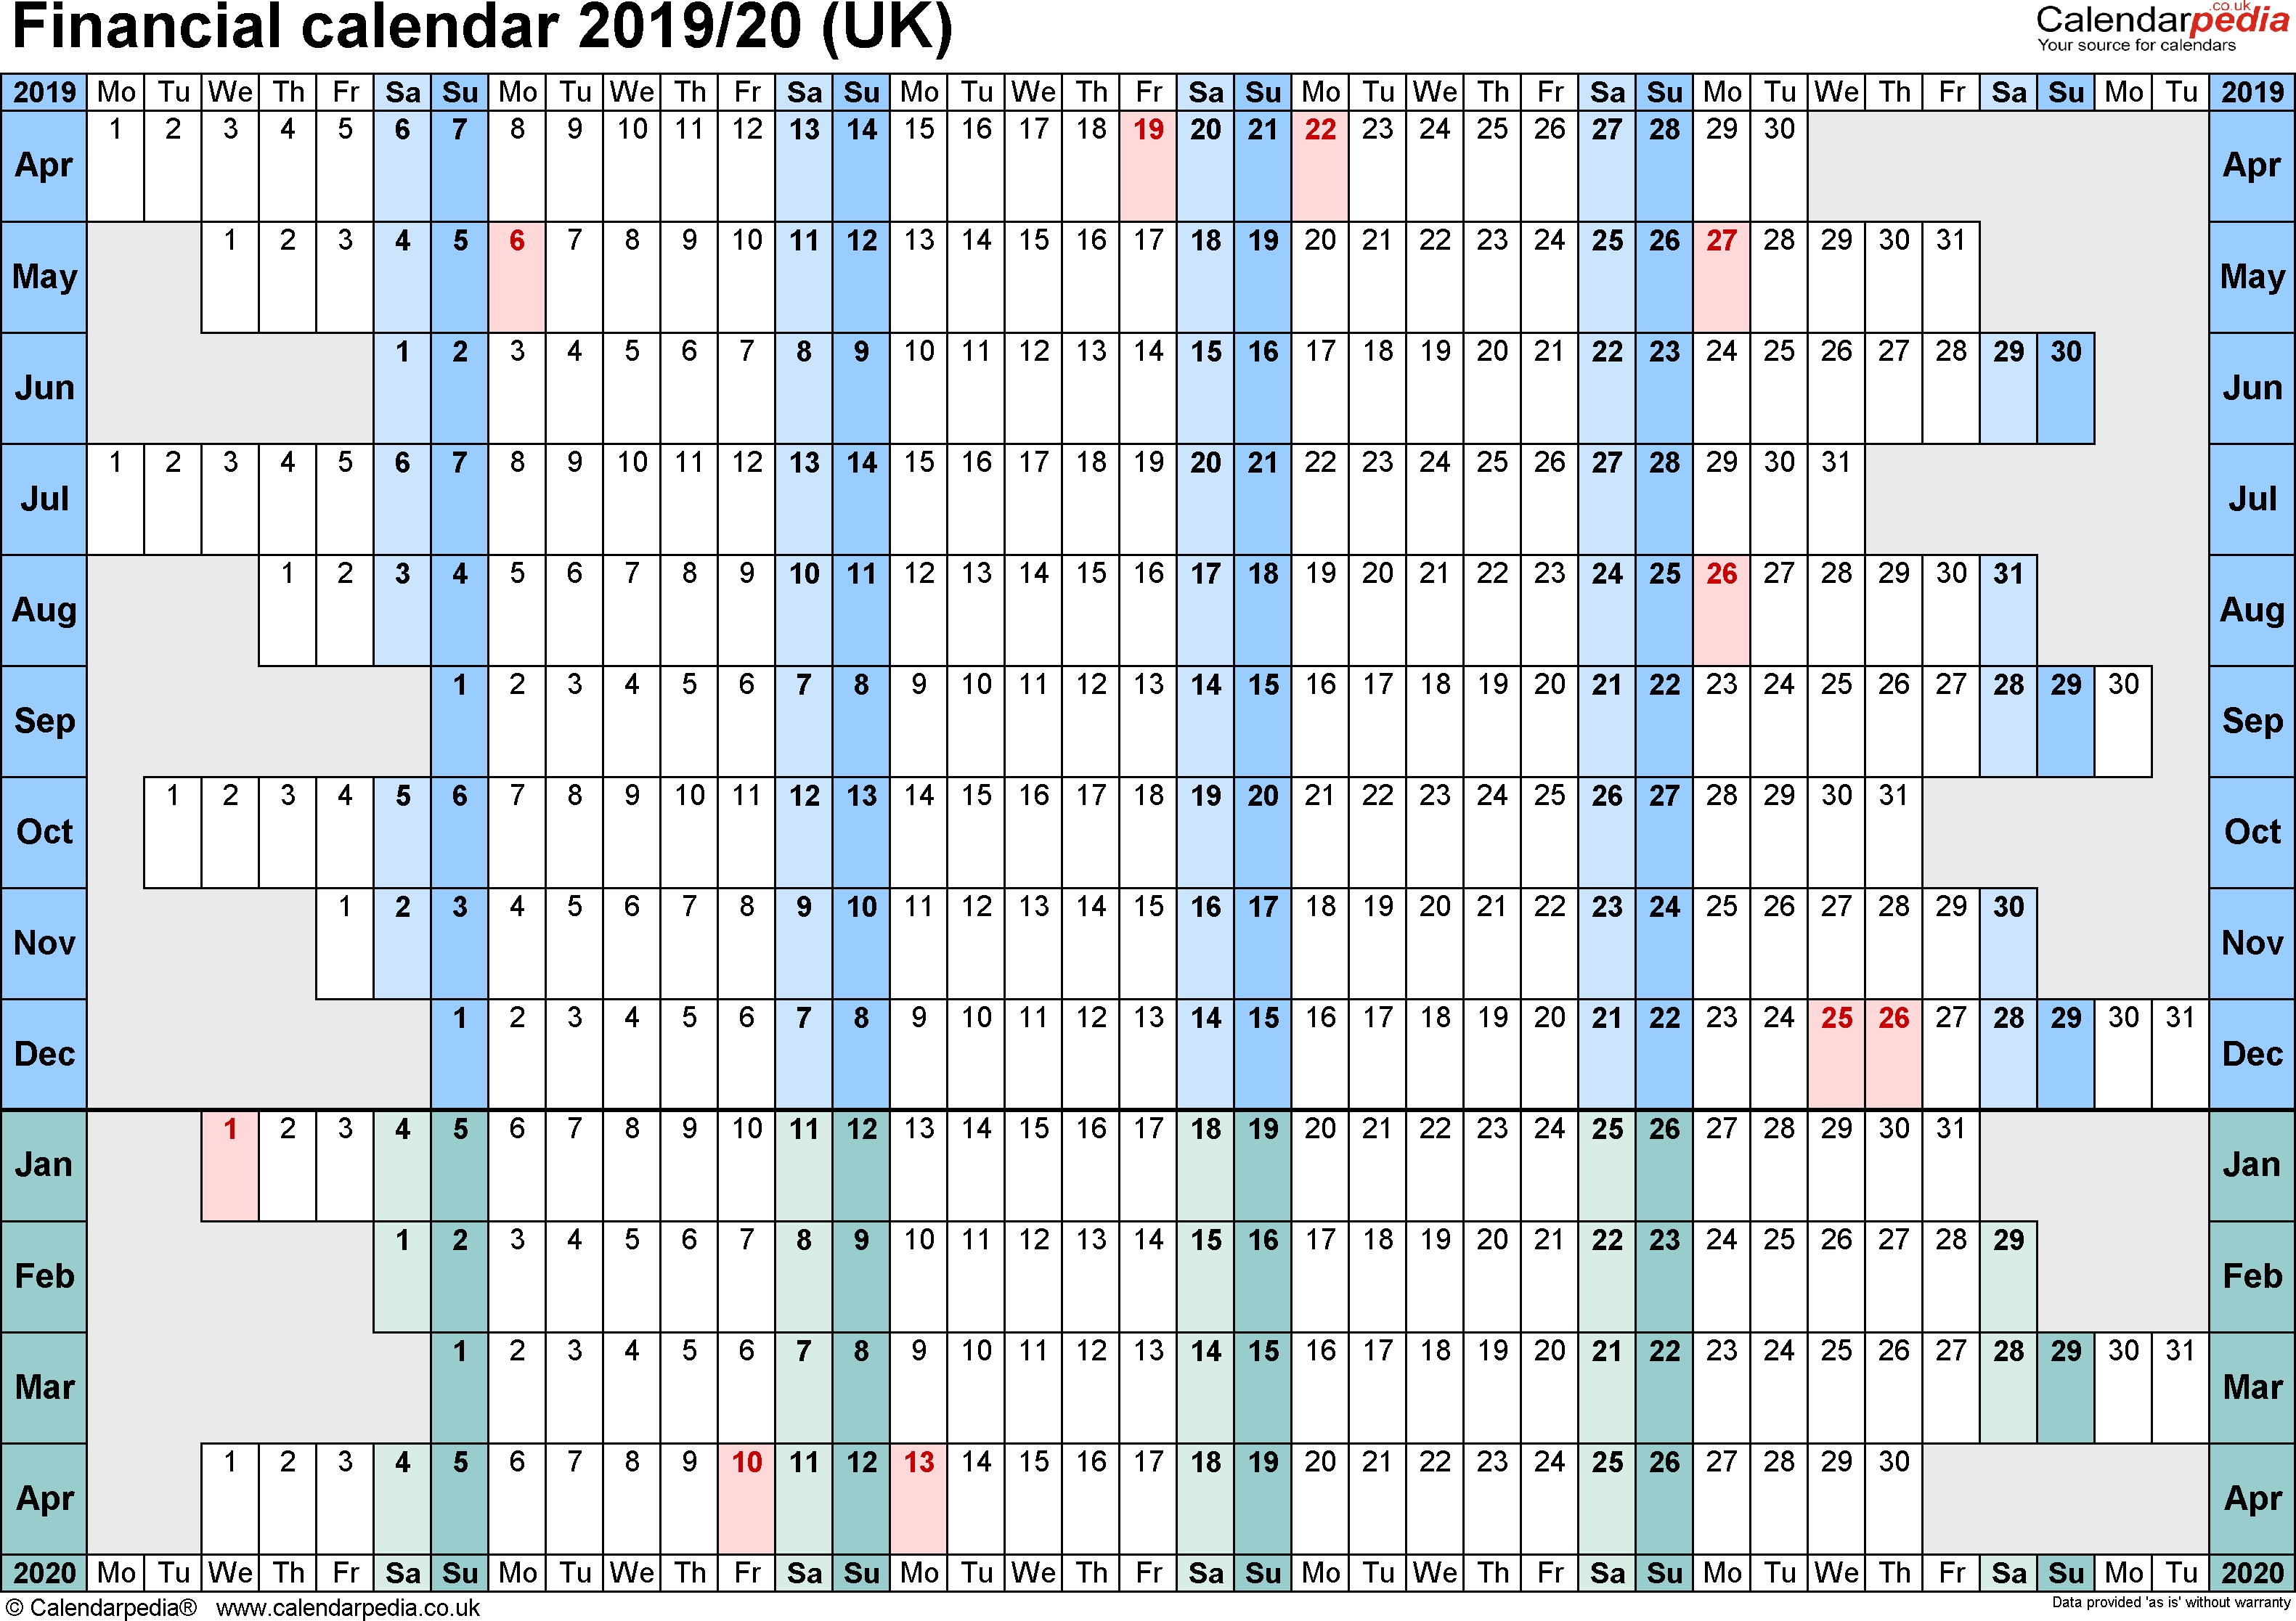 Financial Calendars 2019/20 (Uk) In Pdf Format for 2019-2020Tax Calendar Month And Week